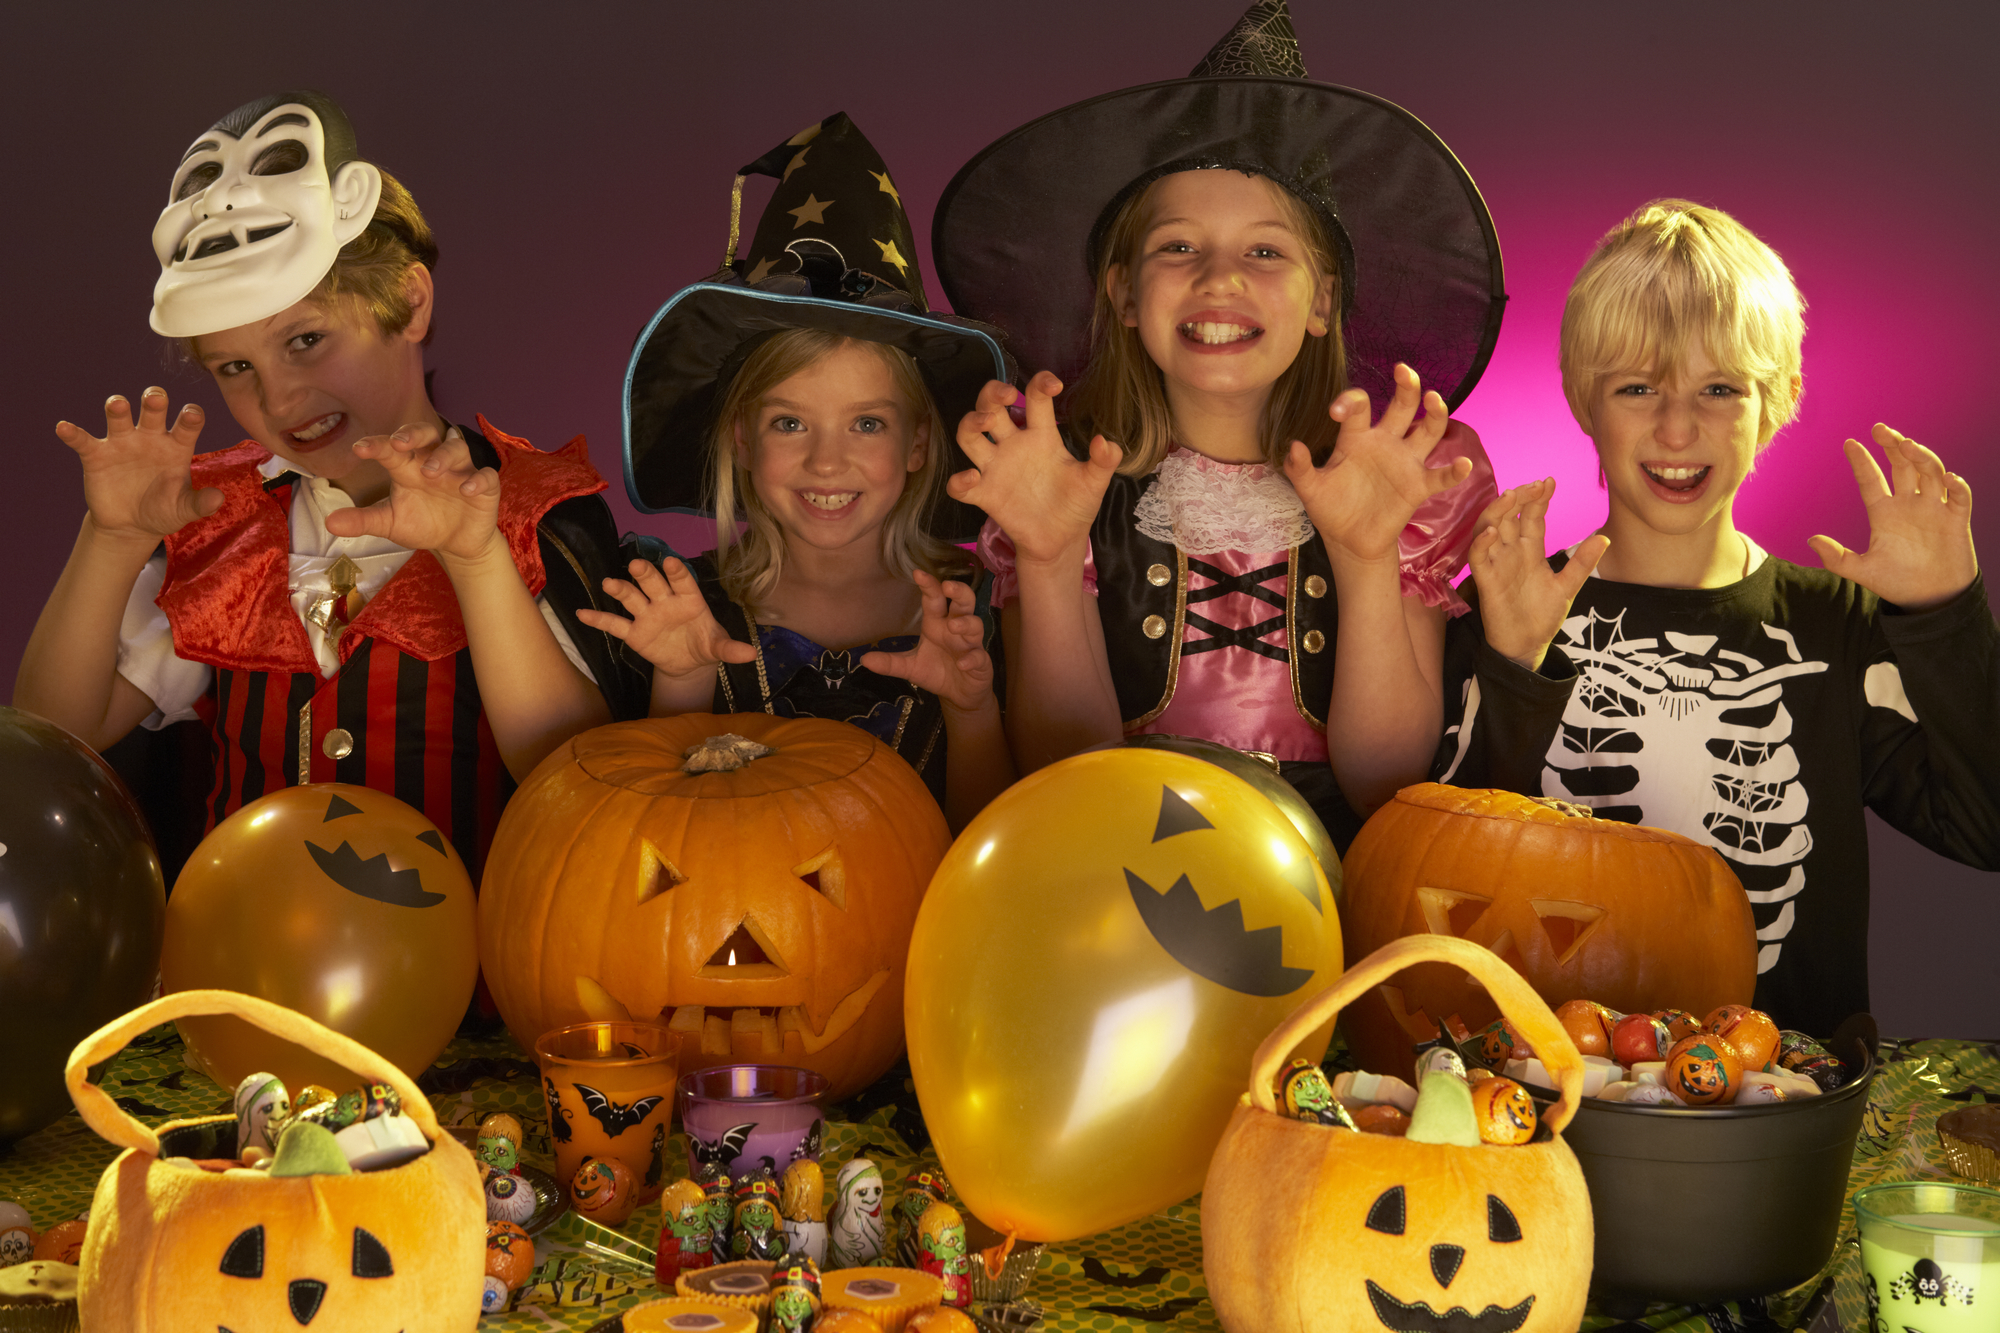 Spooktacular Halloween Events in the Stateline Area